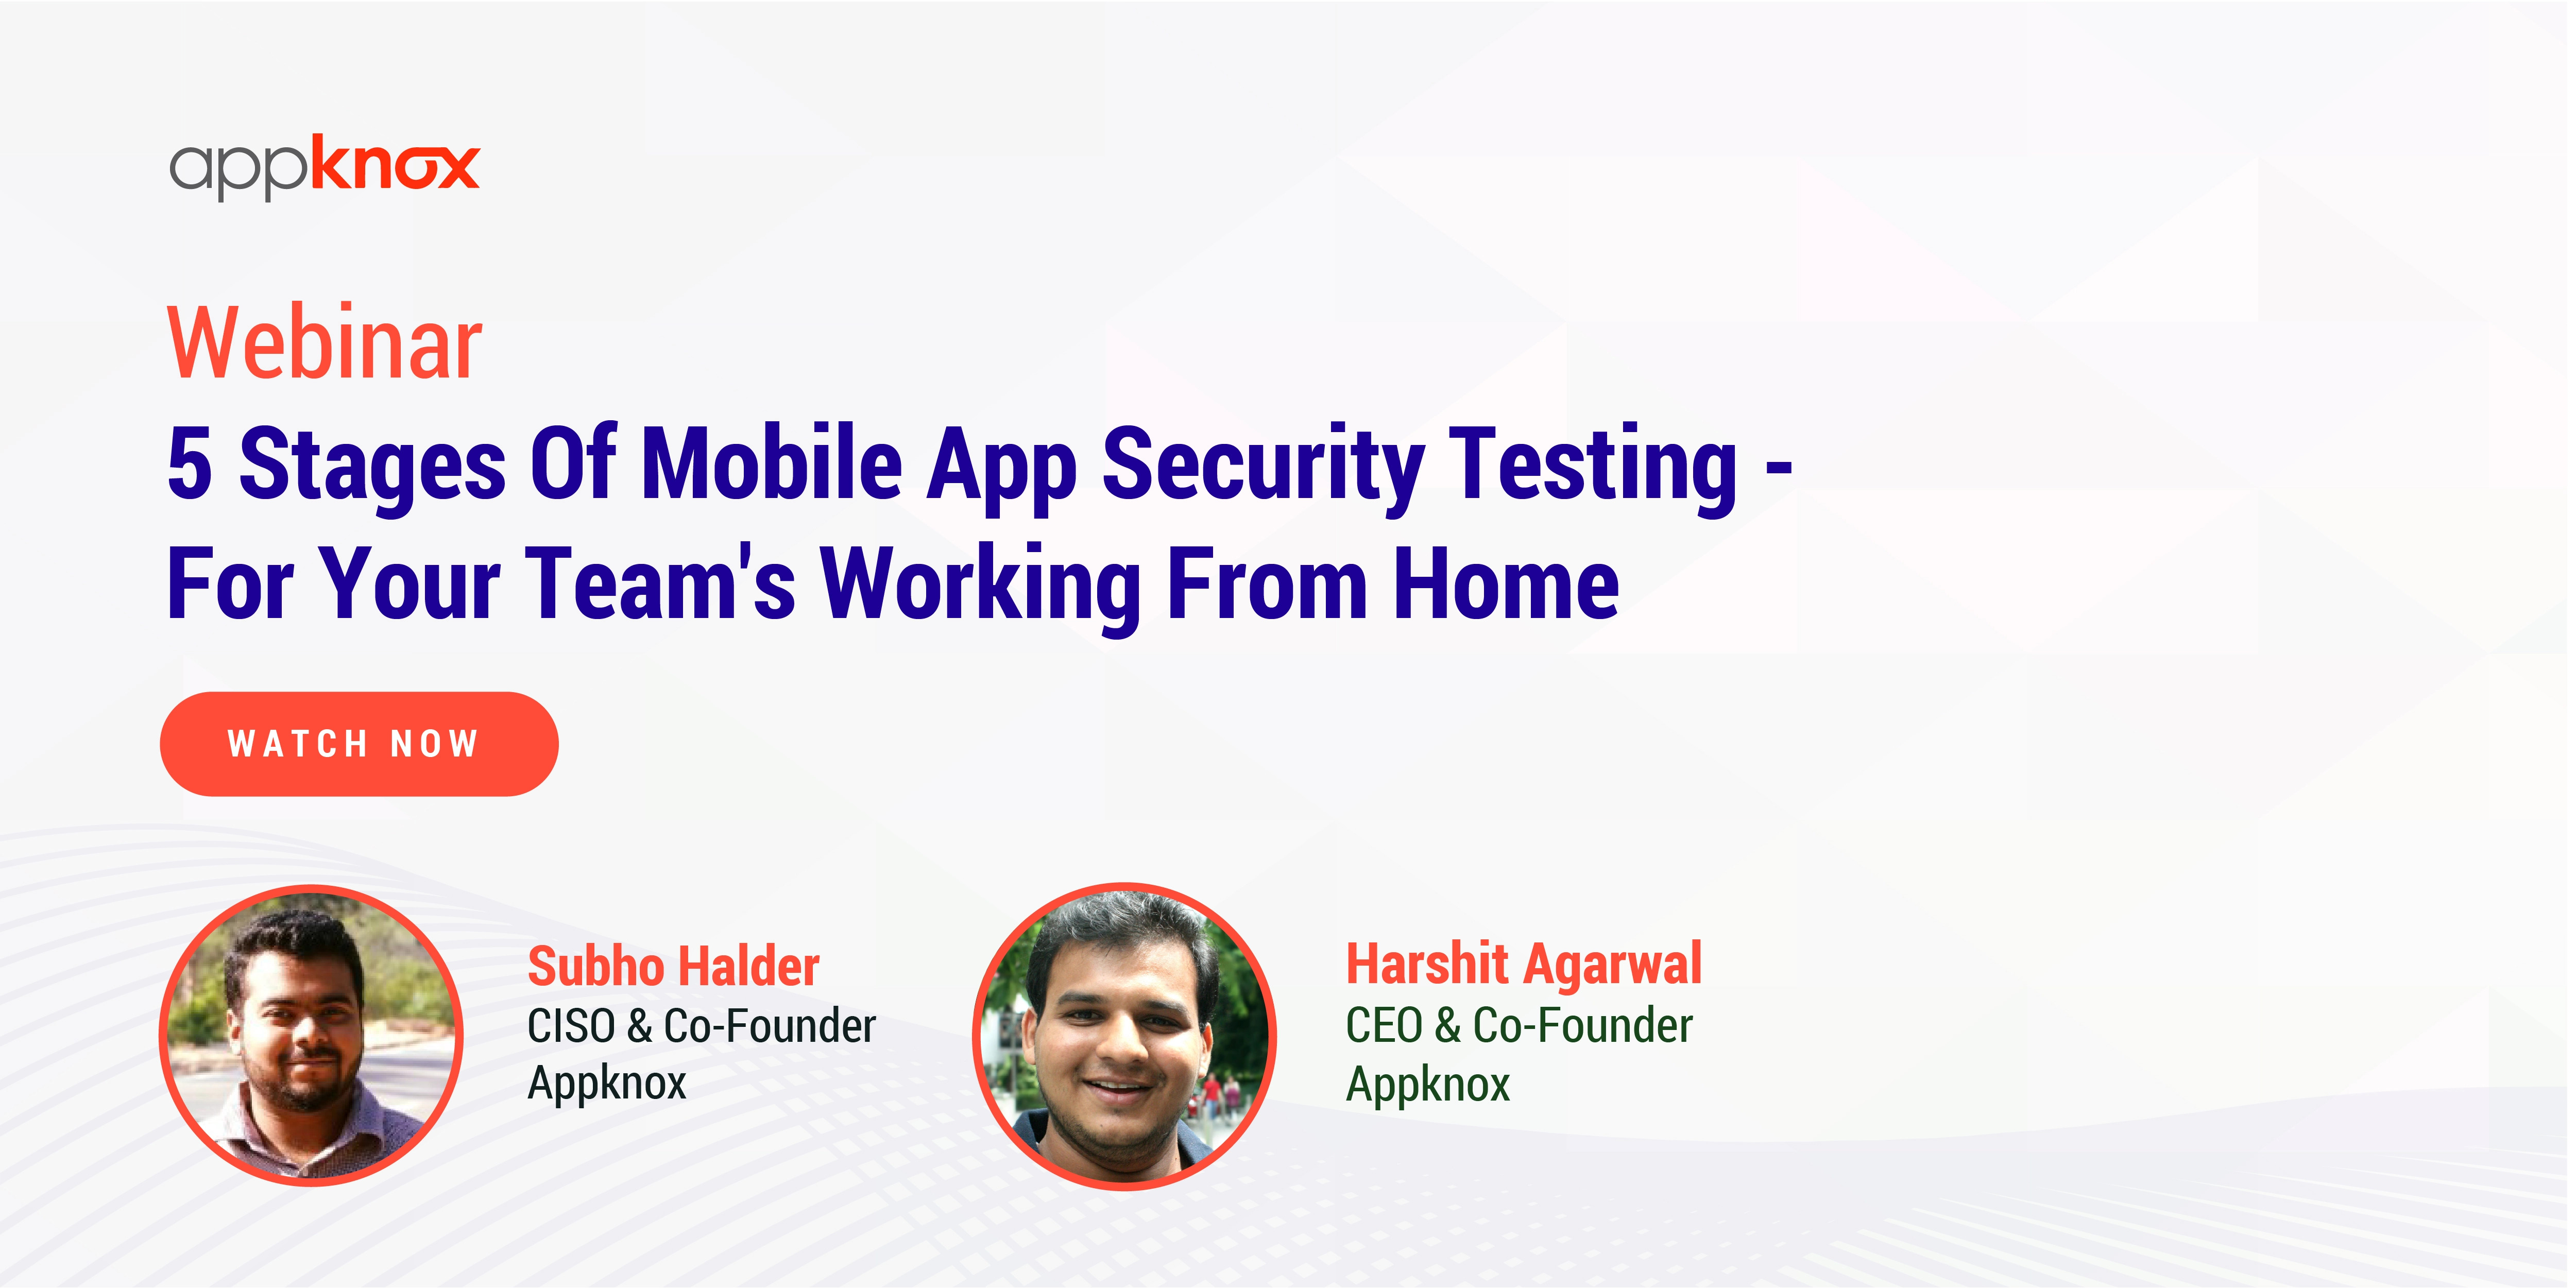 5 Stages of Mobile App Security Testing for your Teams working from home